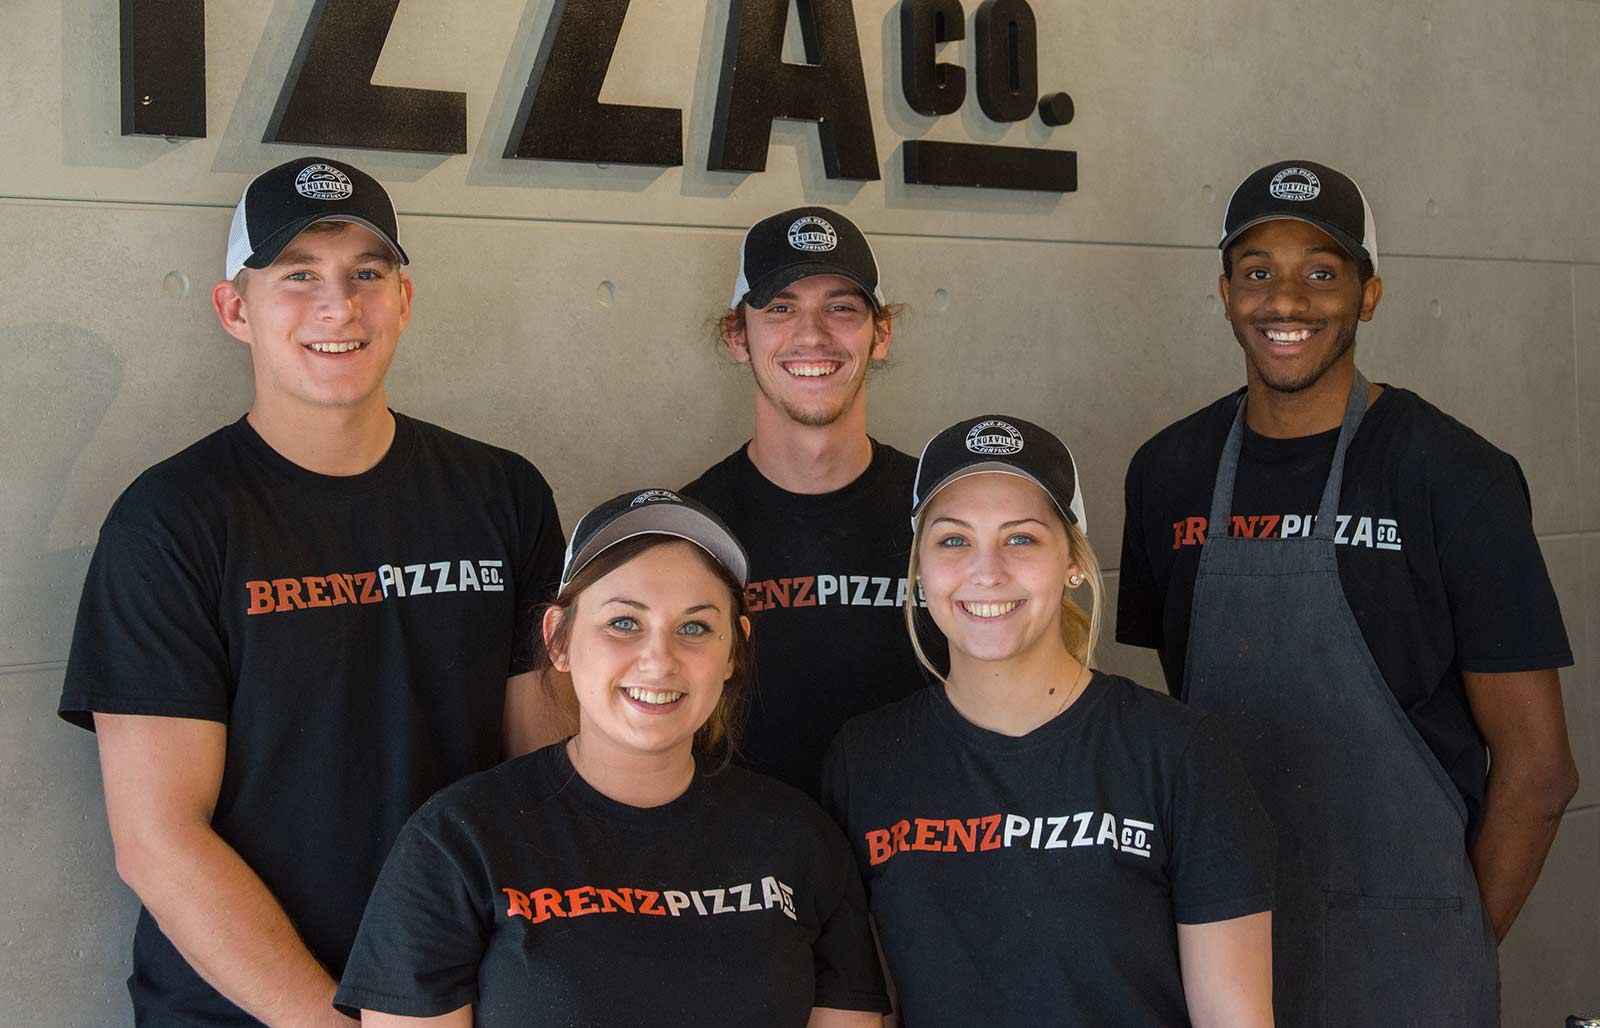 Enzo's pizza employees